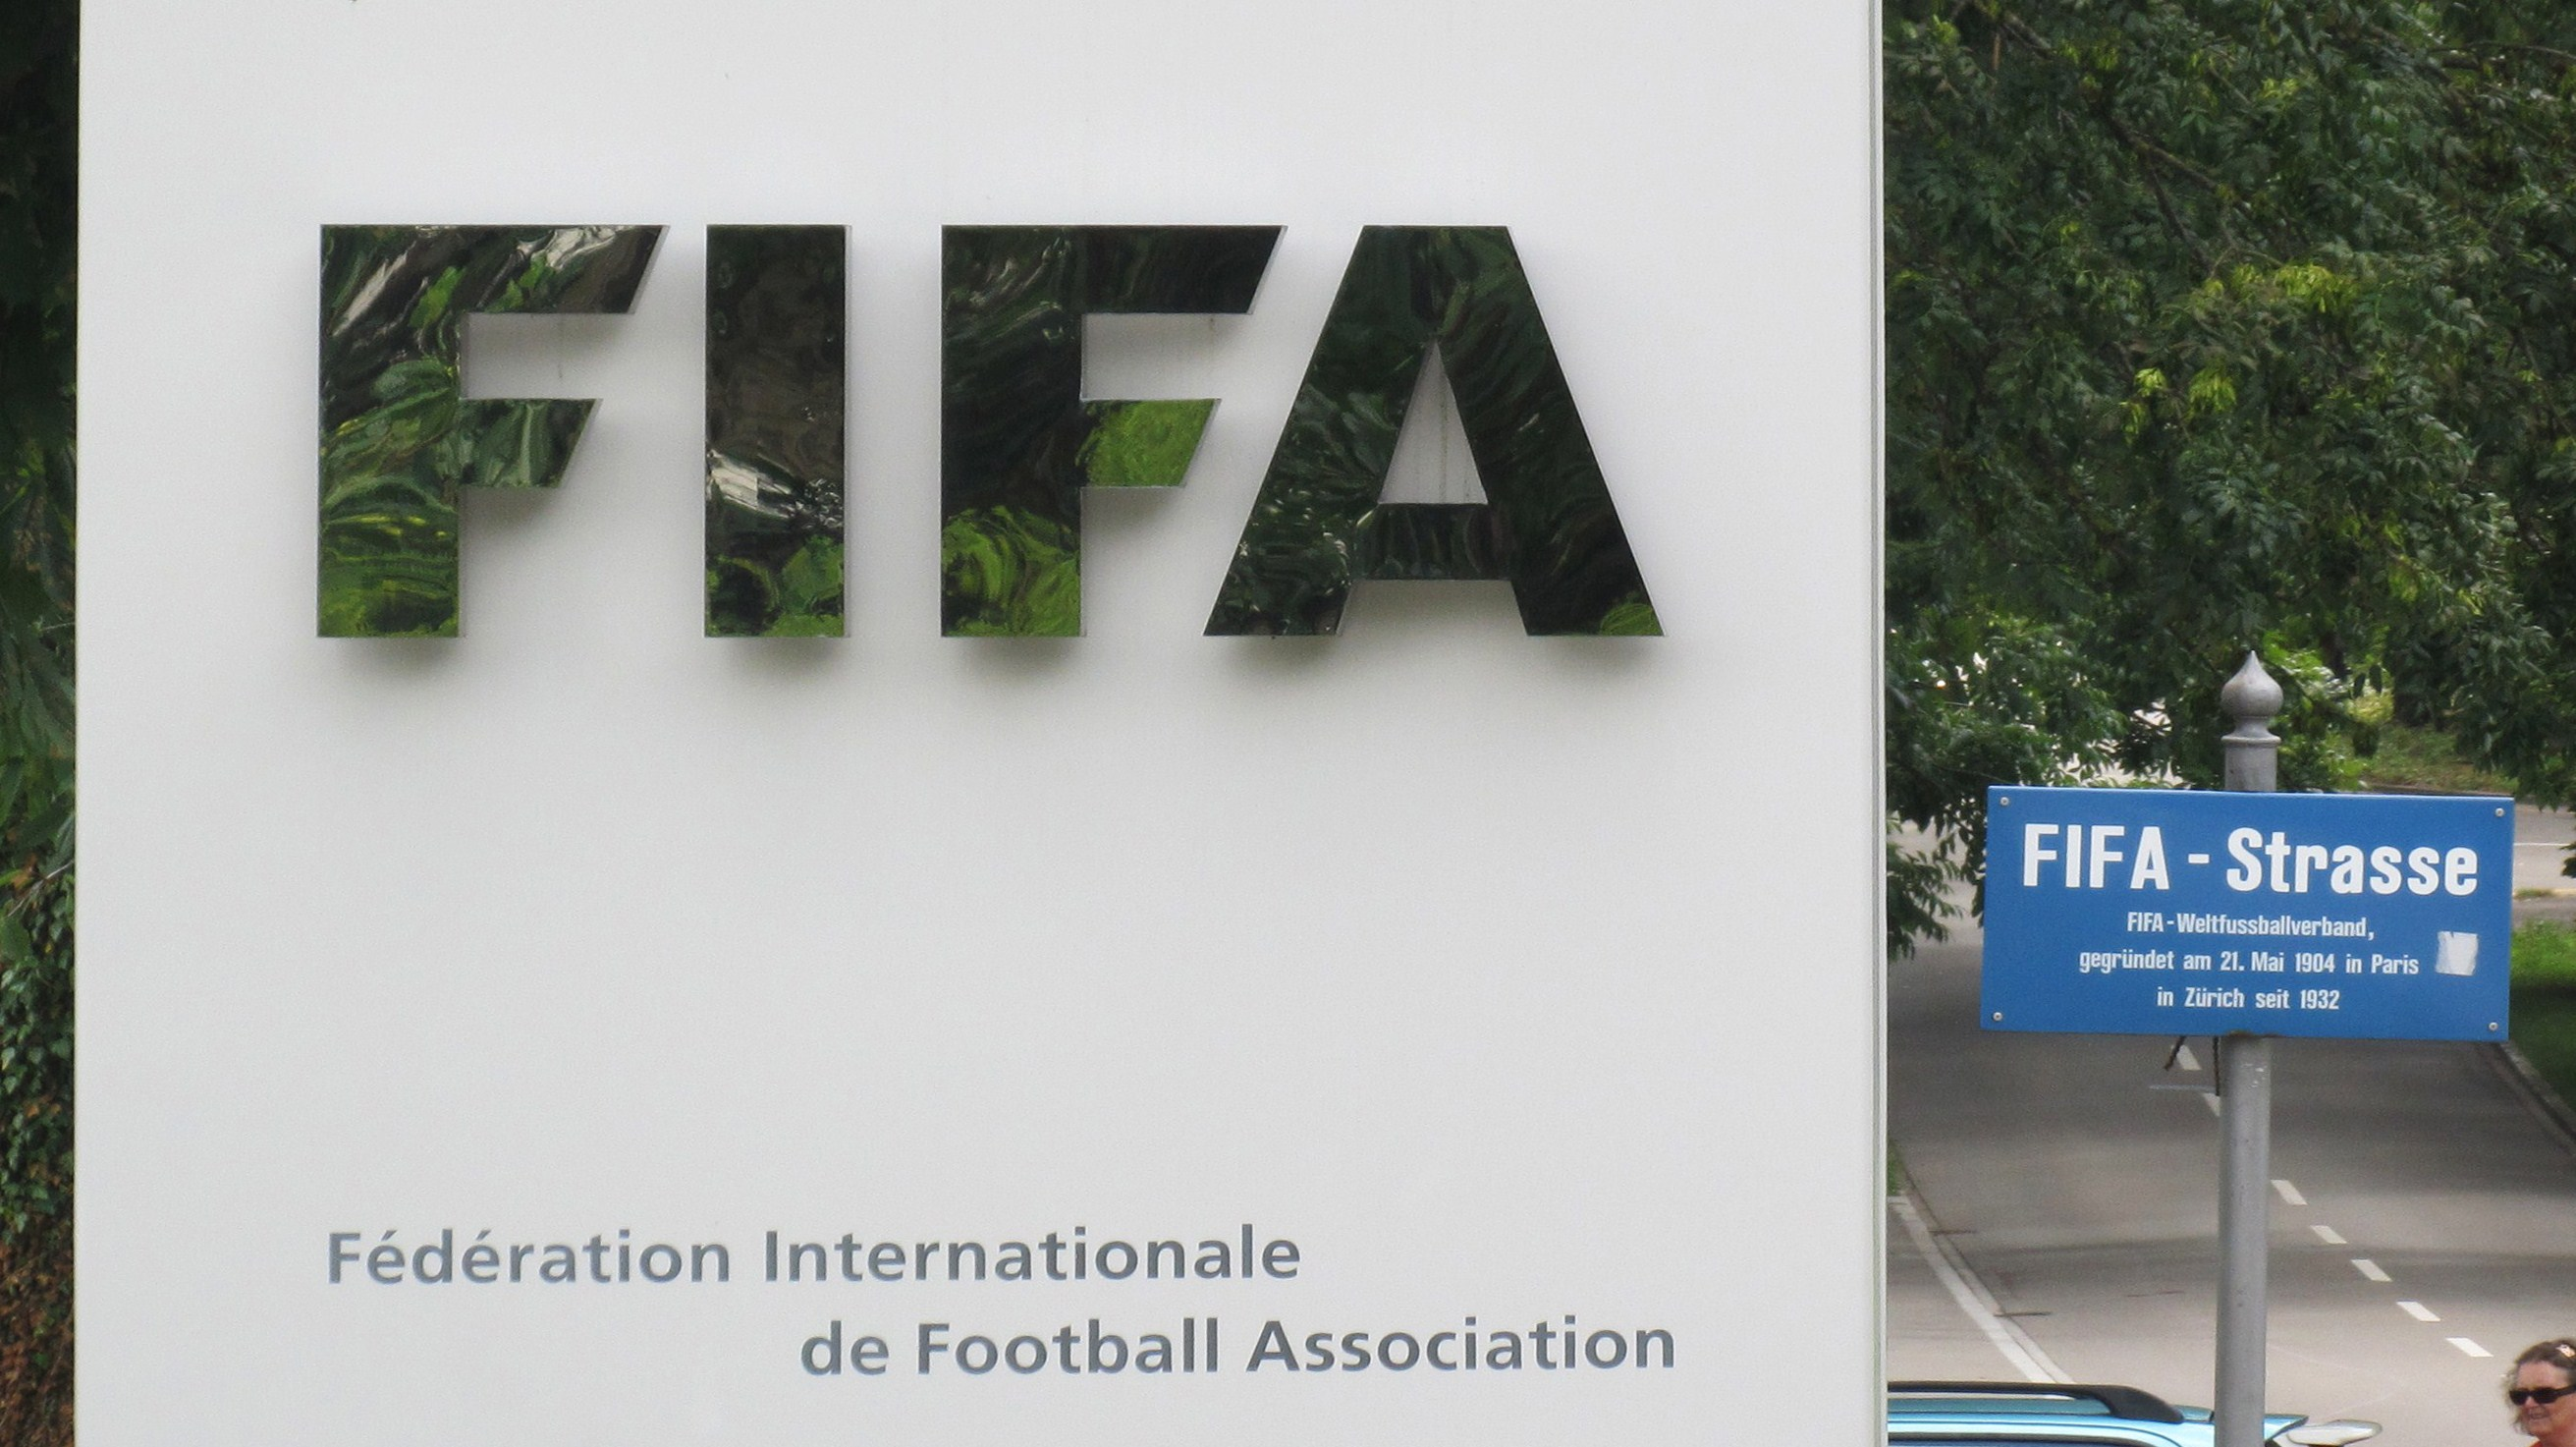 FIFA Headquarters - Por Juerg Hug [CC BY 3.0], via Wikimedia Commons